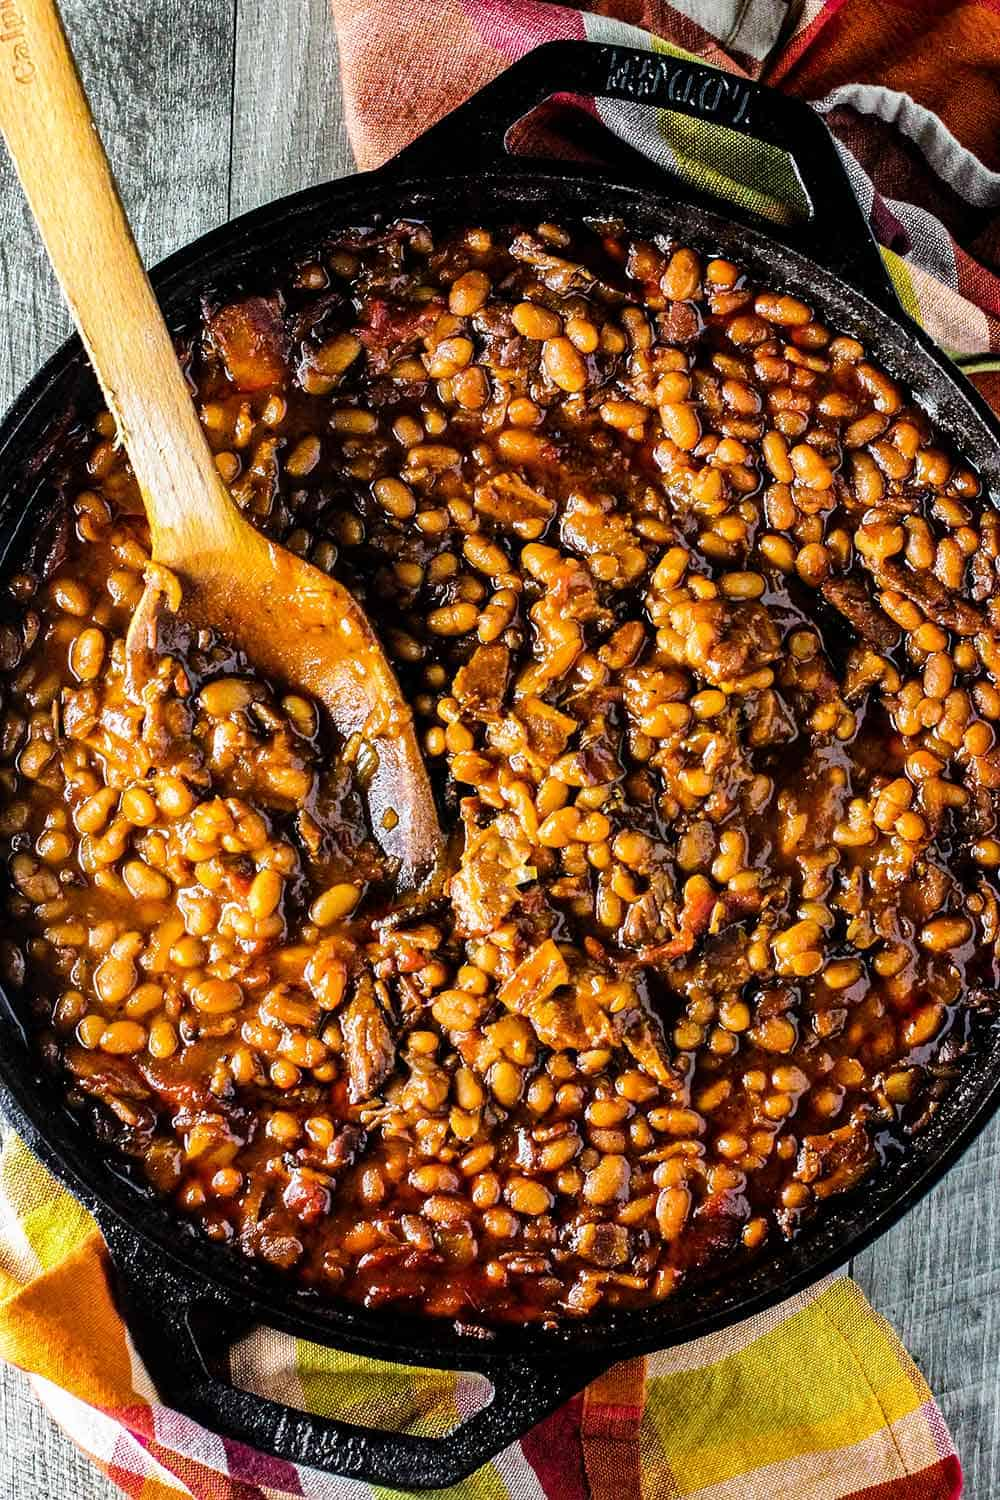 Stir the baked beans with a wooden spoon after they have baked.